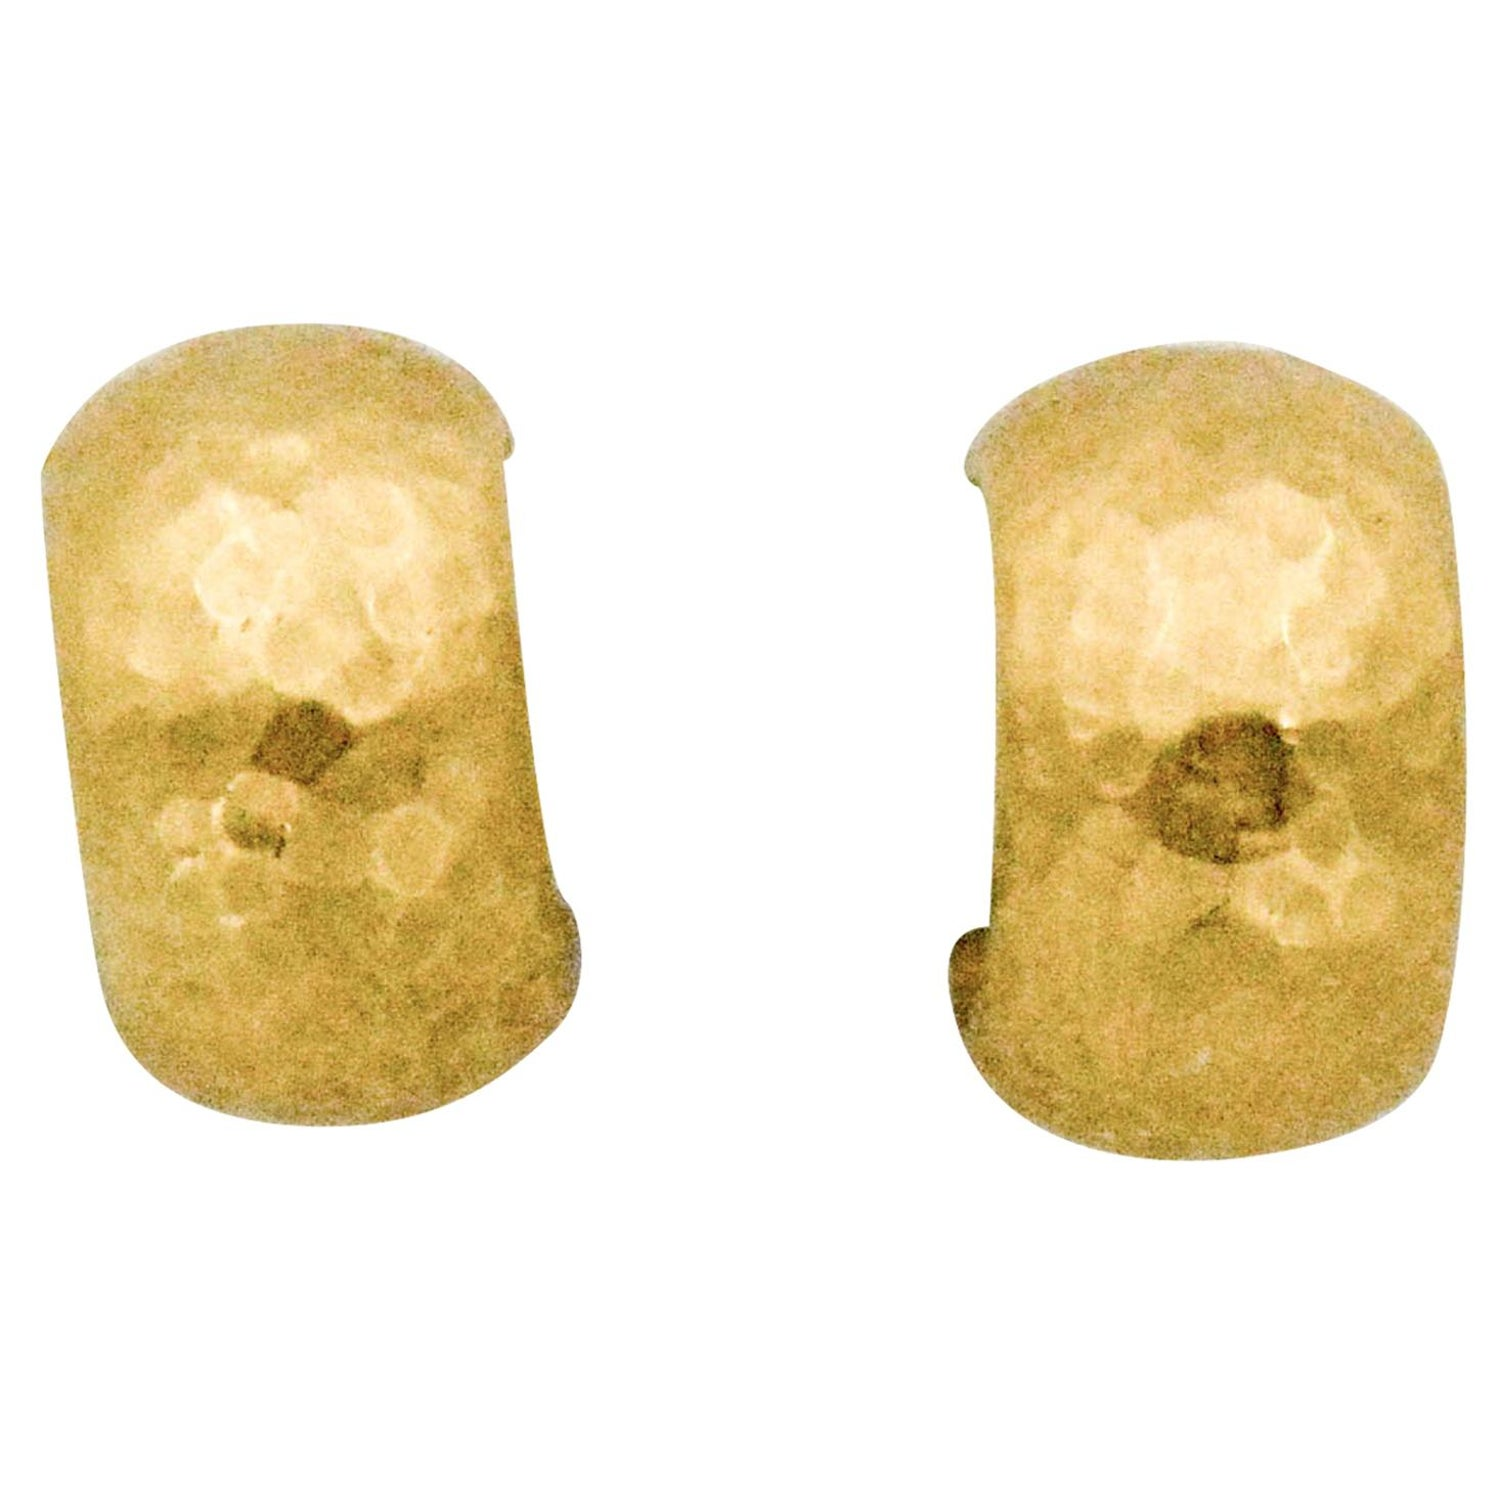 5aa869ef4e482 Luka Behar Hammered 24 Karat Gold Hoop Earrings